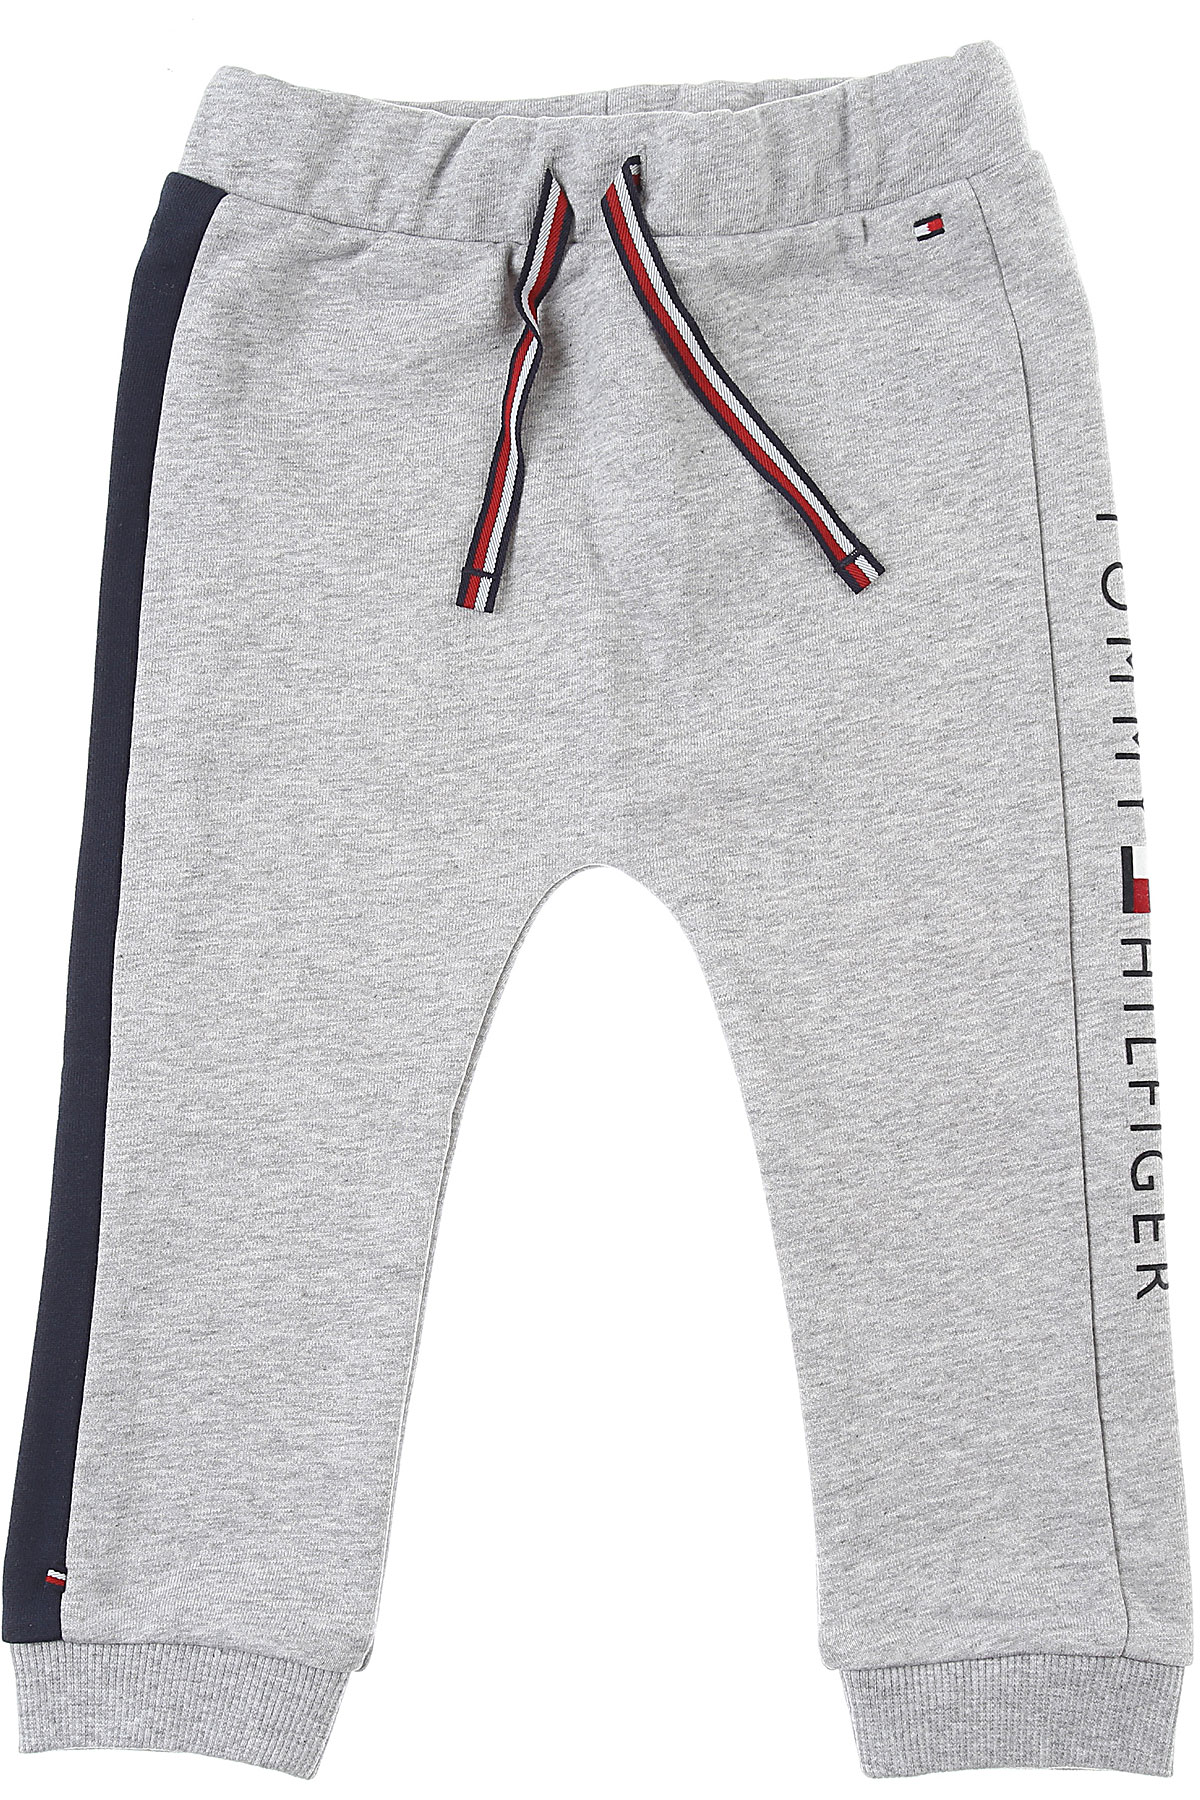 Tommy Hilfiger Baby Sweatpants for Boys On Sale, Grey, Cotton, 2019, 12 M 18 M 3M 3Y 6M 9 M